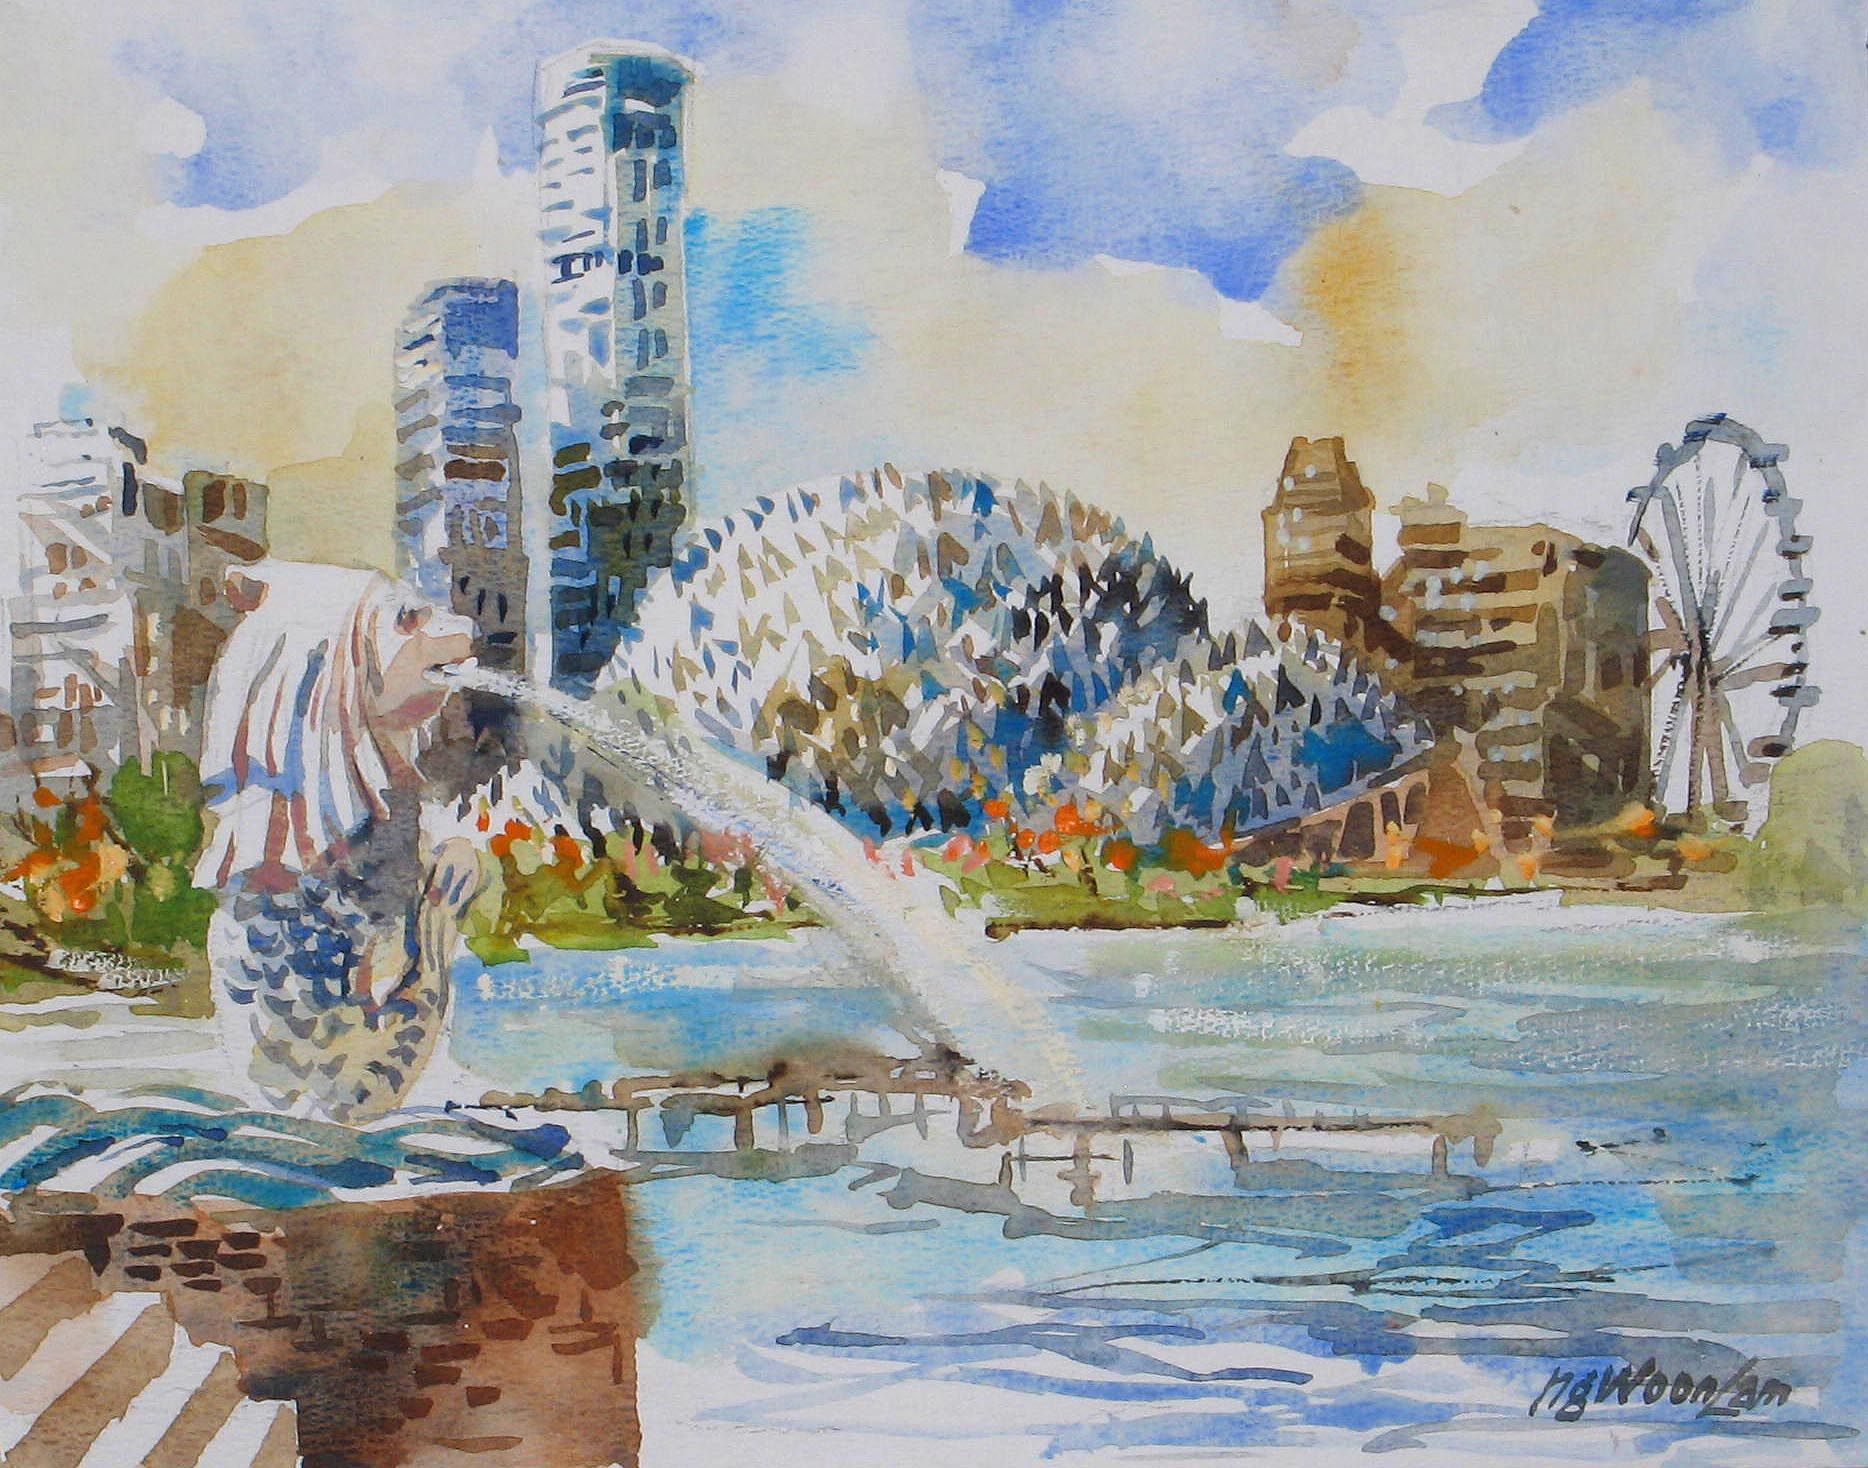 Sinapore Merlion Esplanade Commission Painting